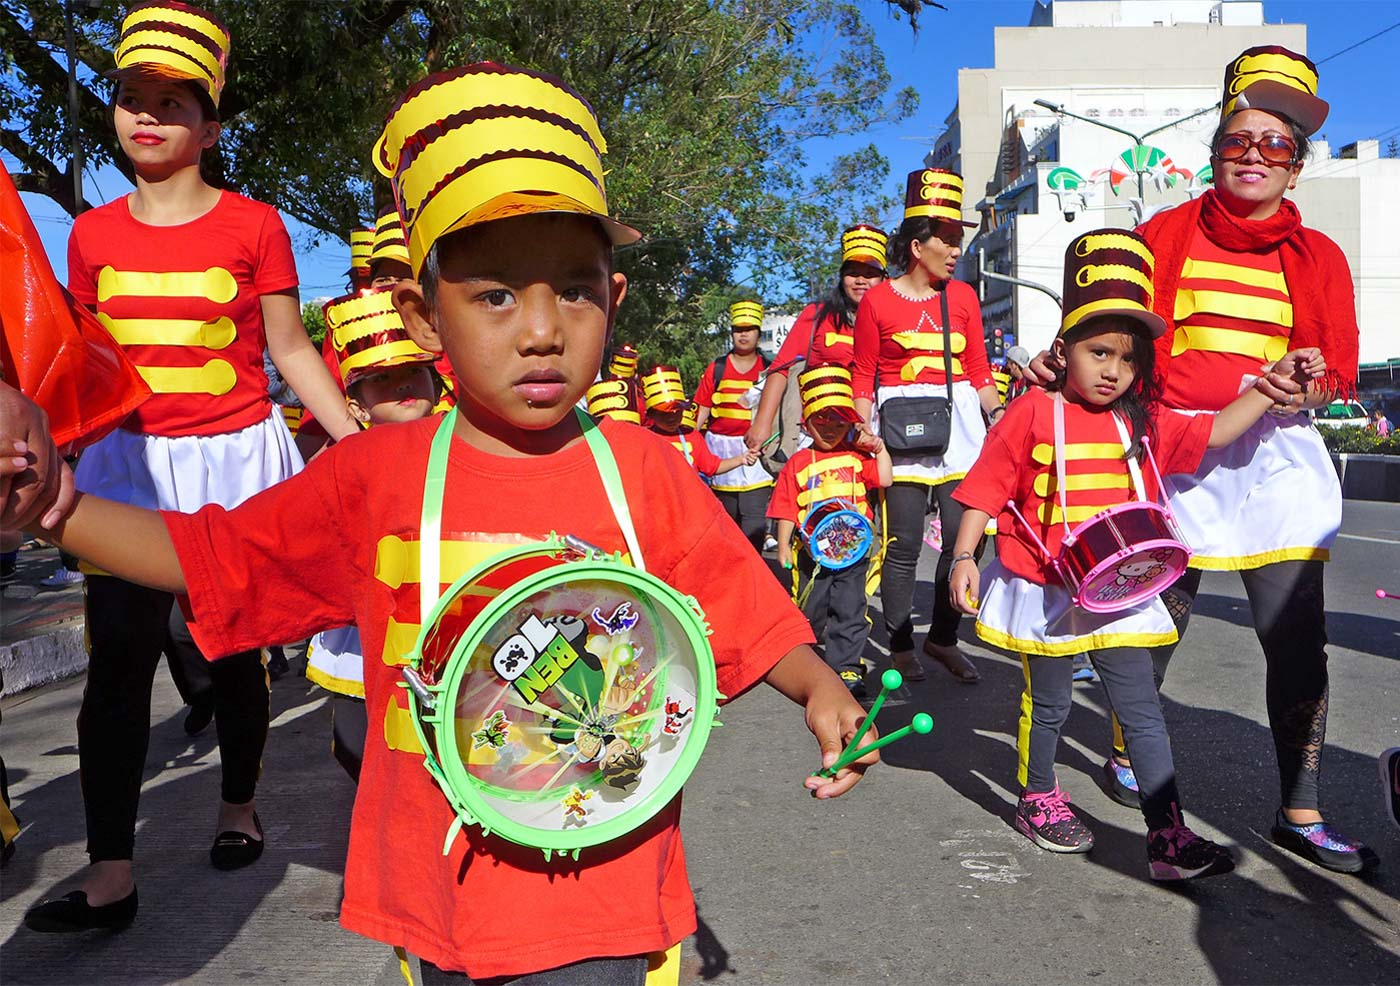 LITTLE DRUMMERS. Kids and parents dress up as little drummer boys and girls at the event